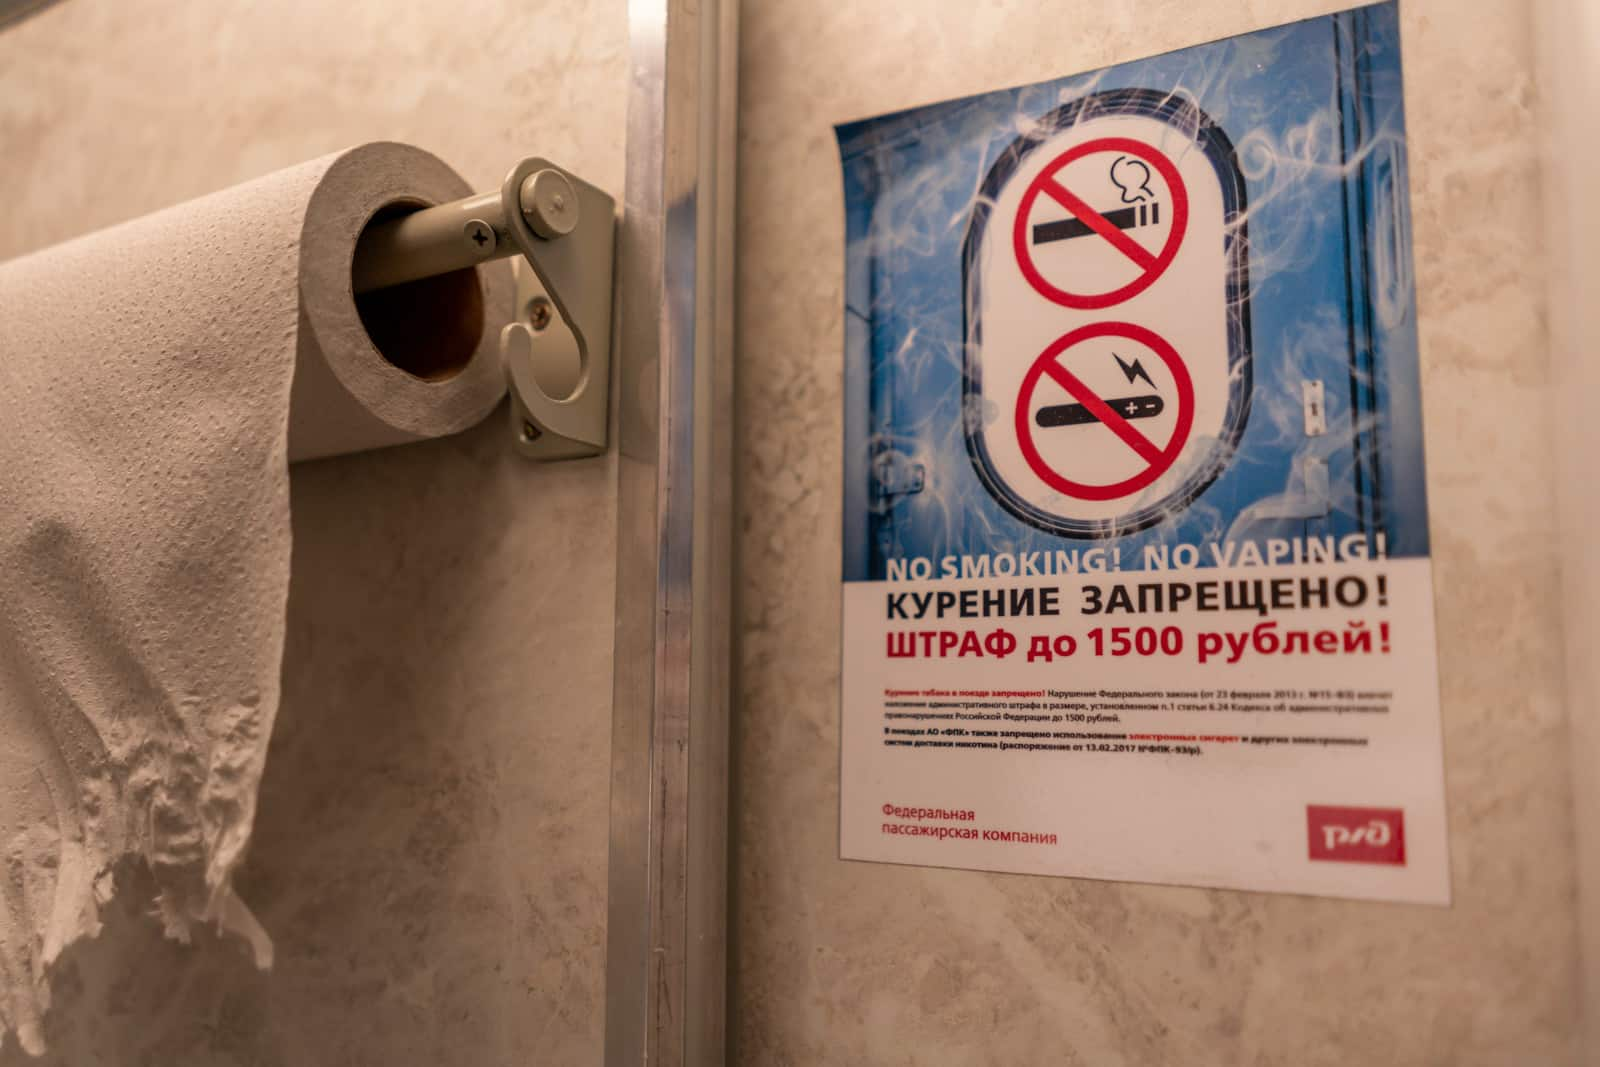 No smoking sign in toilet of Trans-Siberian train in Russia